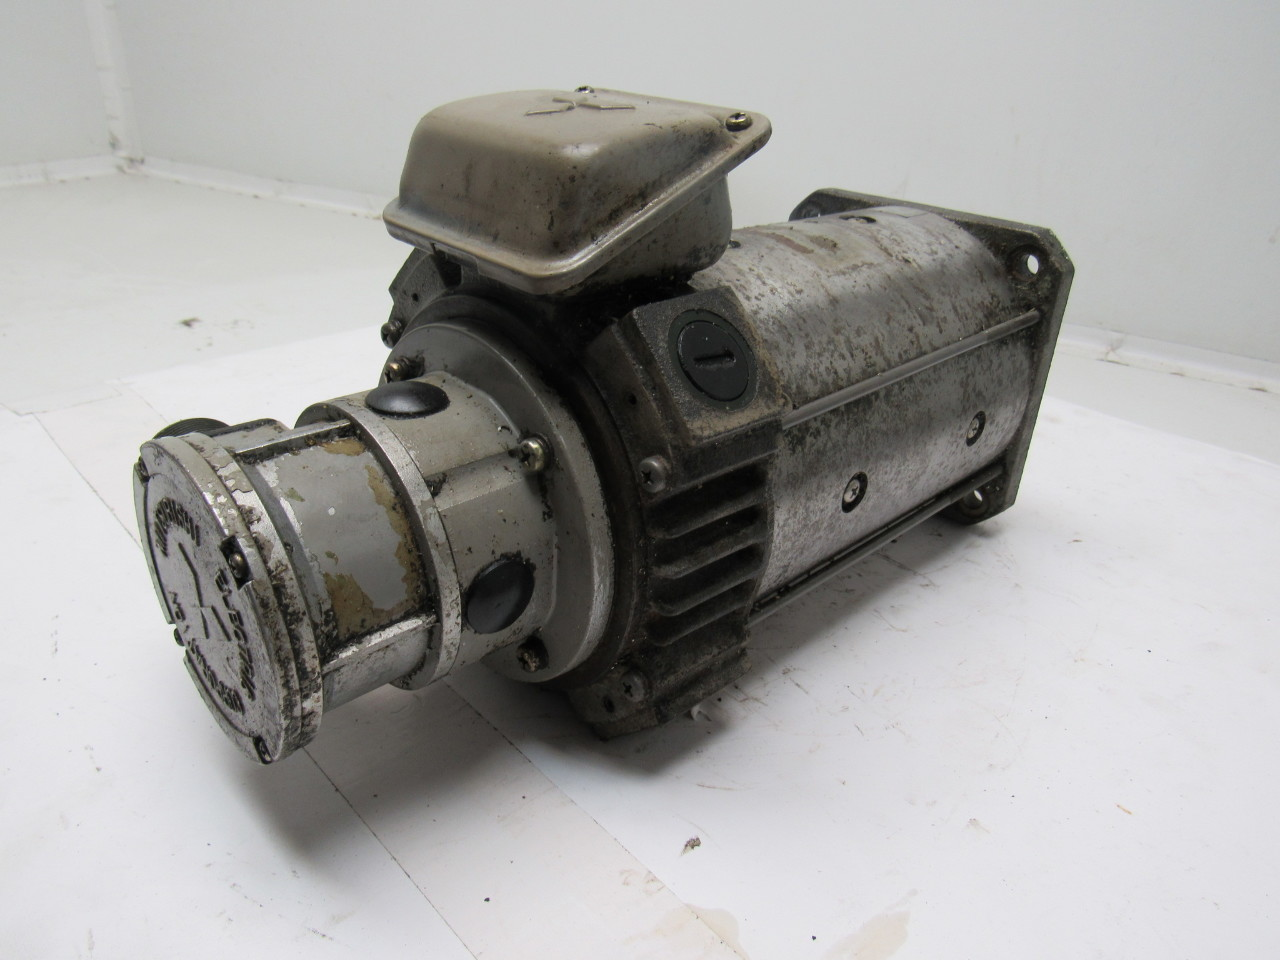 Mitsubishi Electric Hd 81 12s Dc Servo Motor From A Mazak